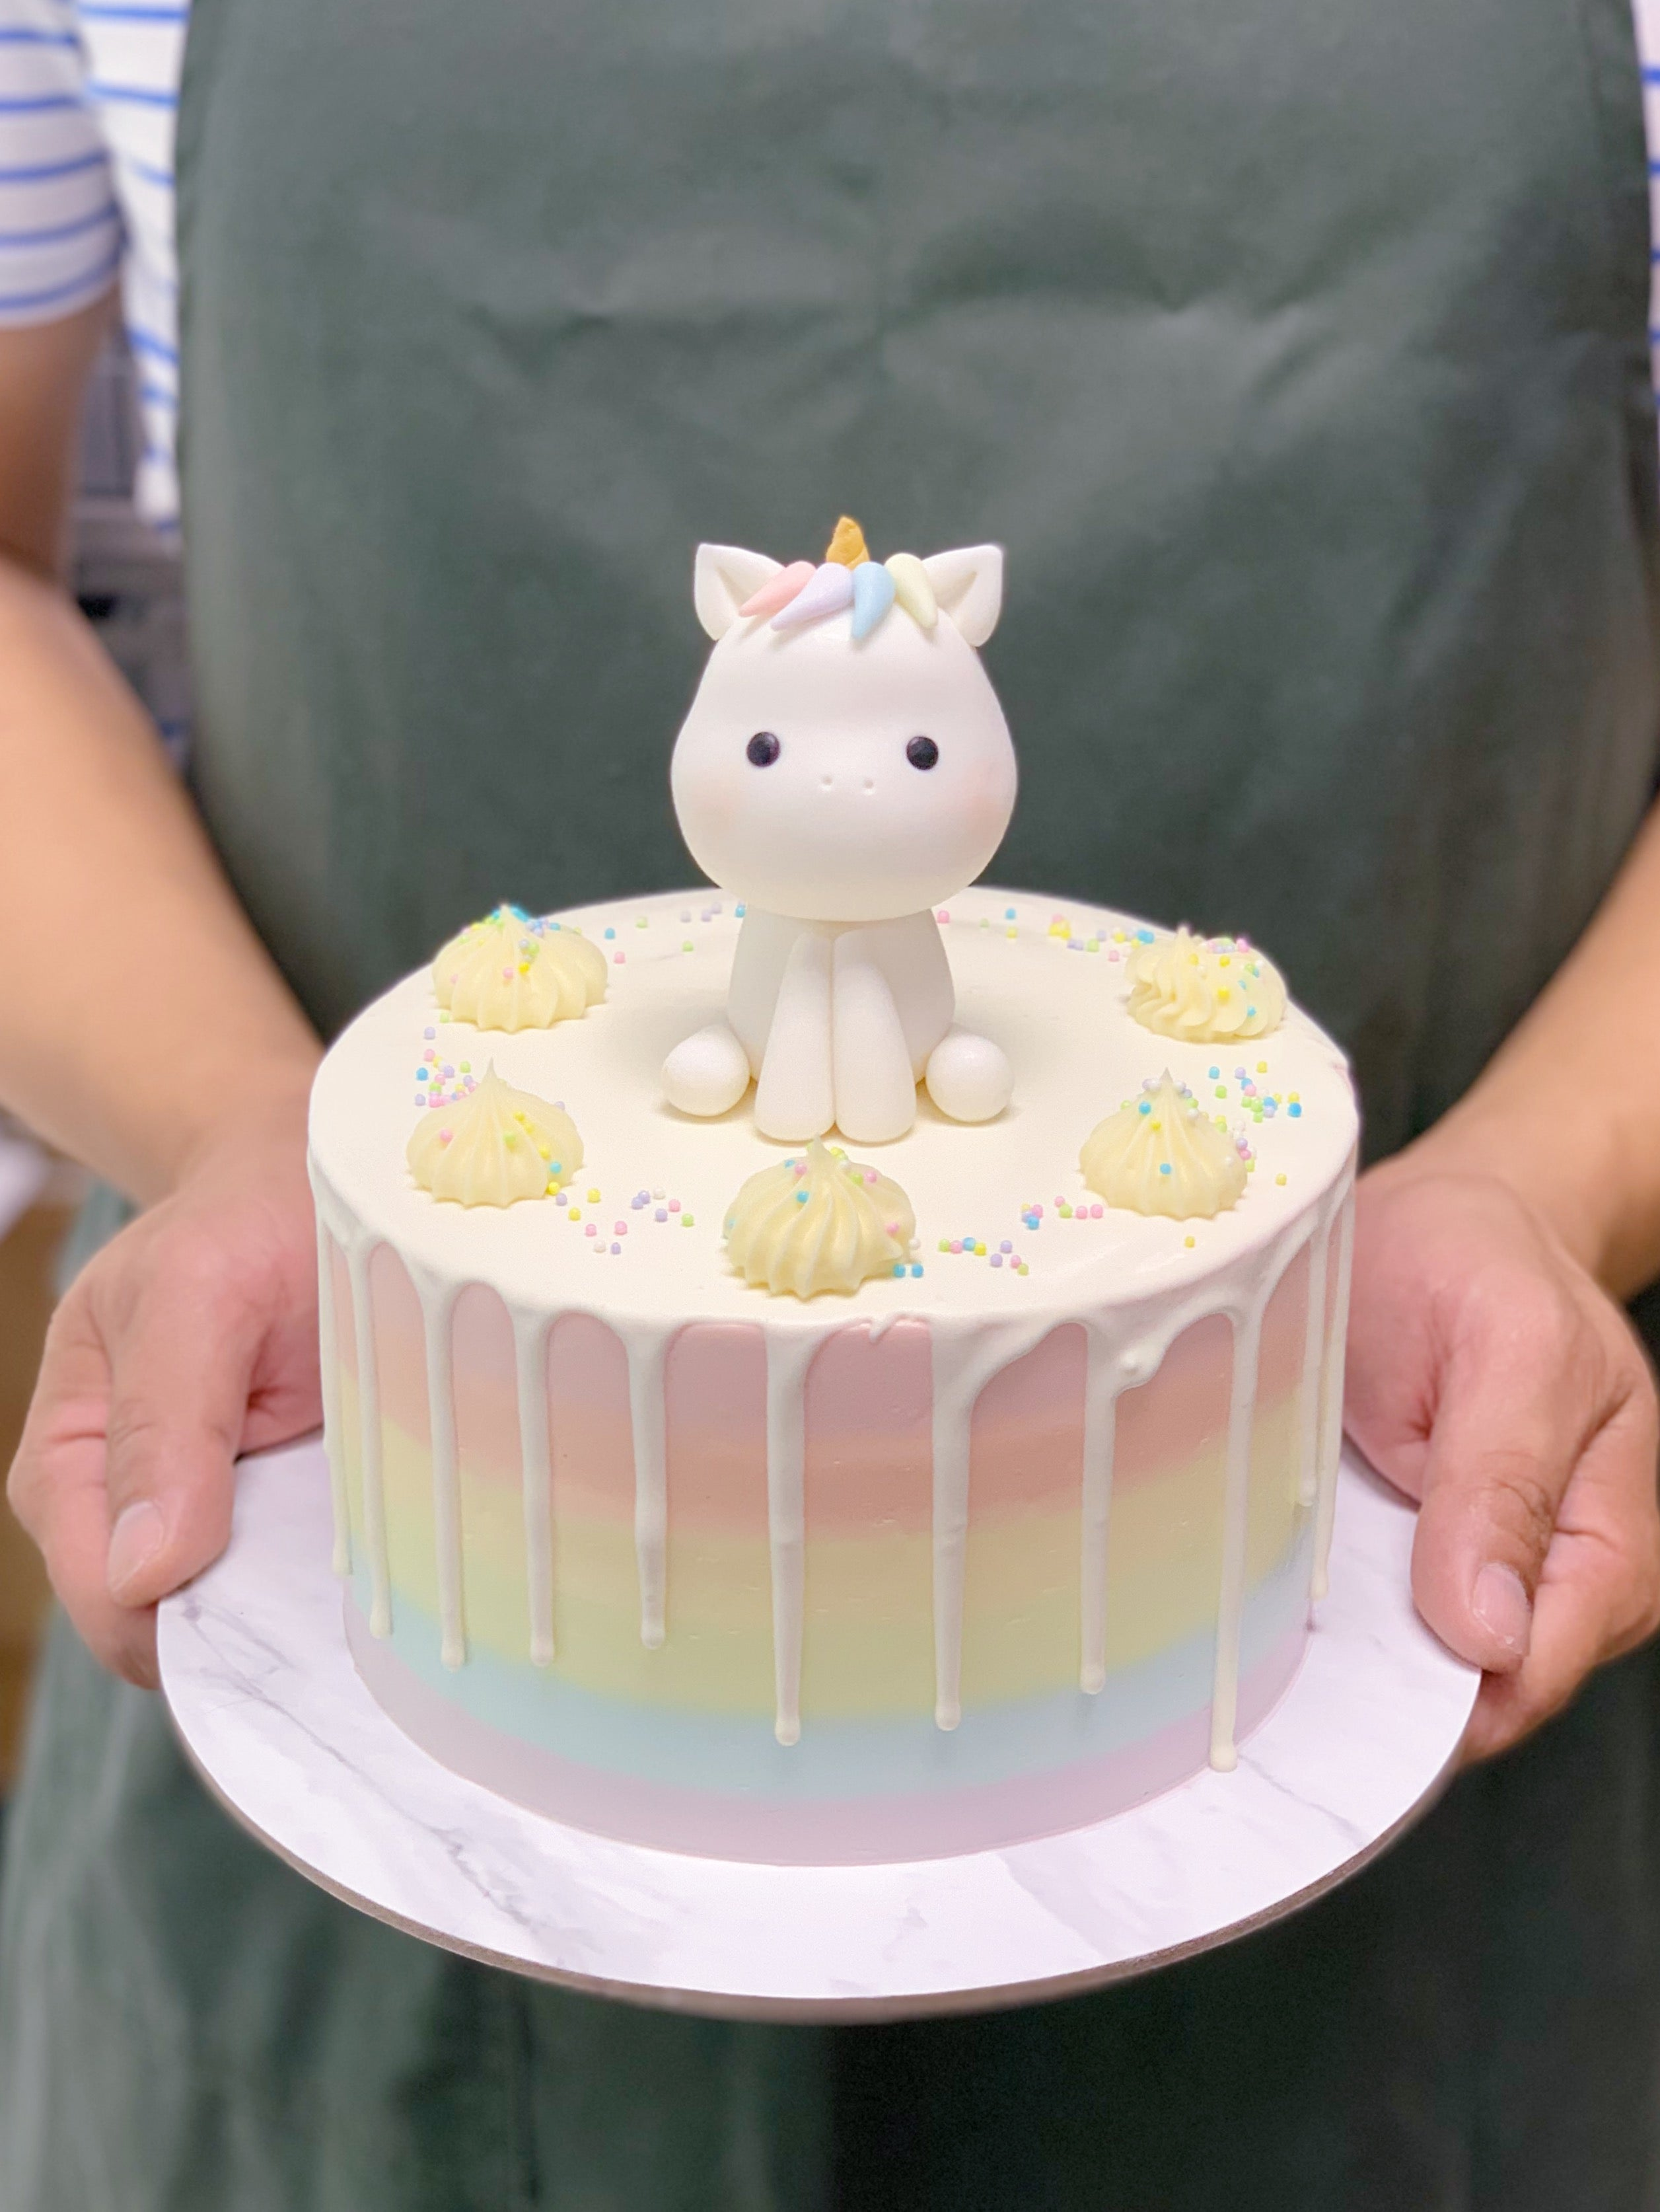 Pastel Rainbow Drip Cake with Unicorn Topper